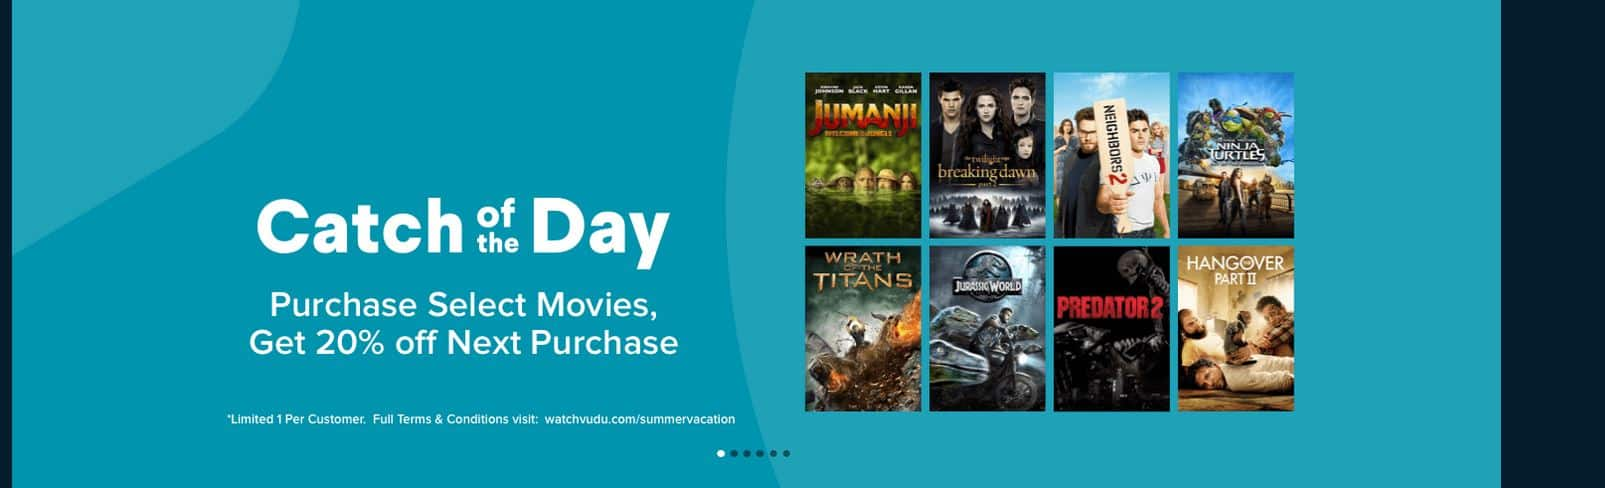 VUDU Catch of the Day - Purchase Select Movies, Get 20% off Next Purchase (YMMV)